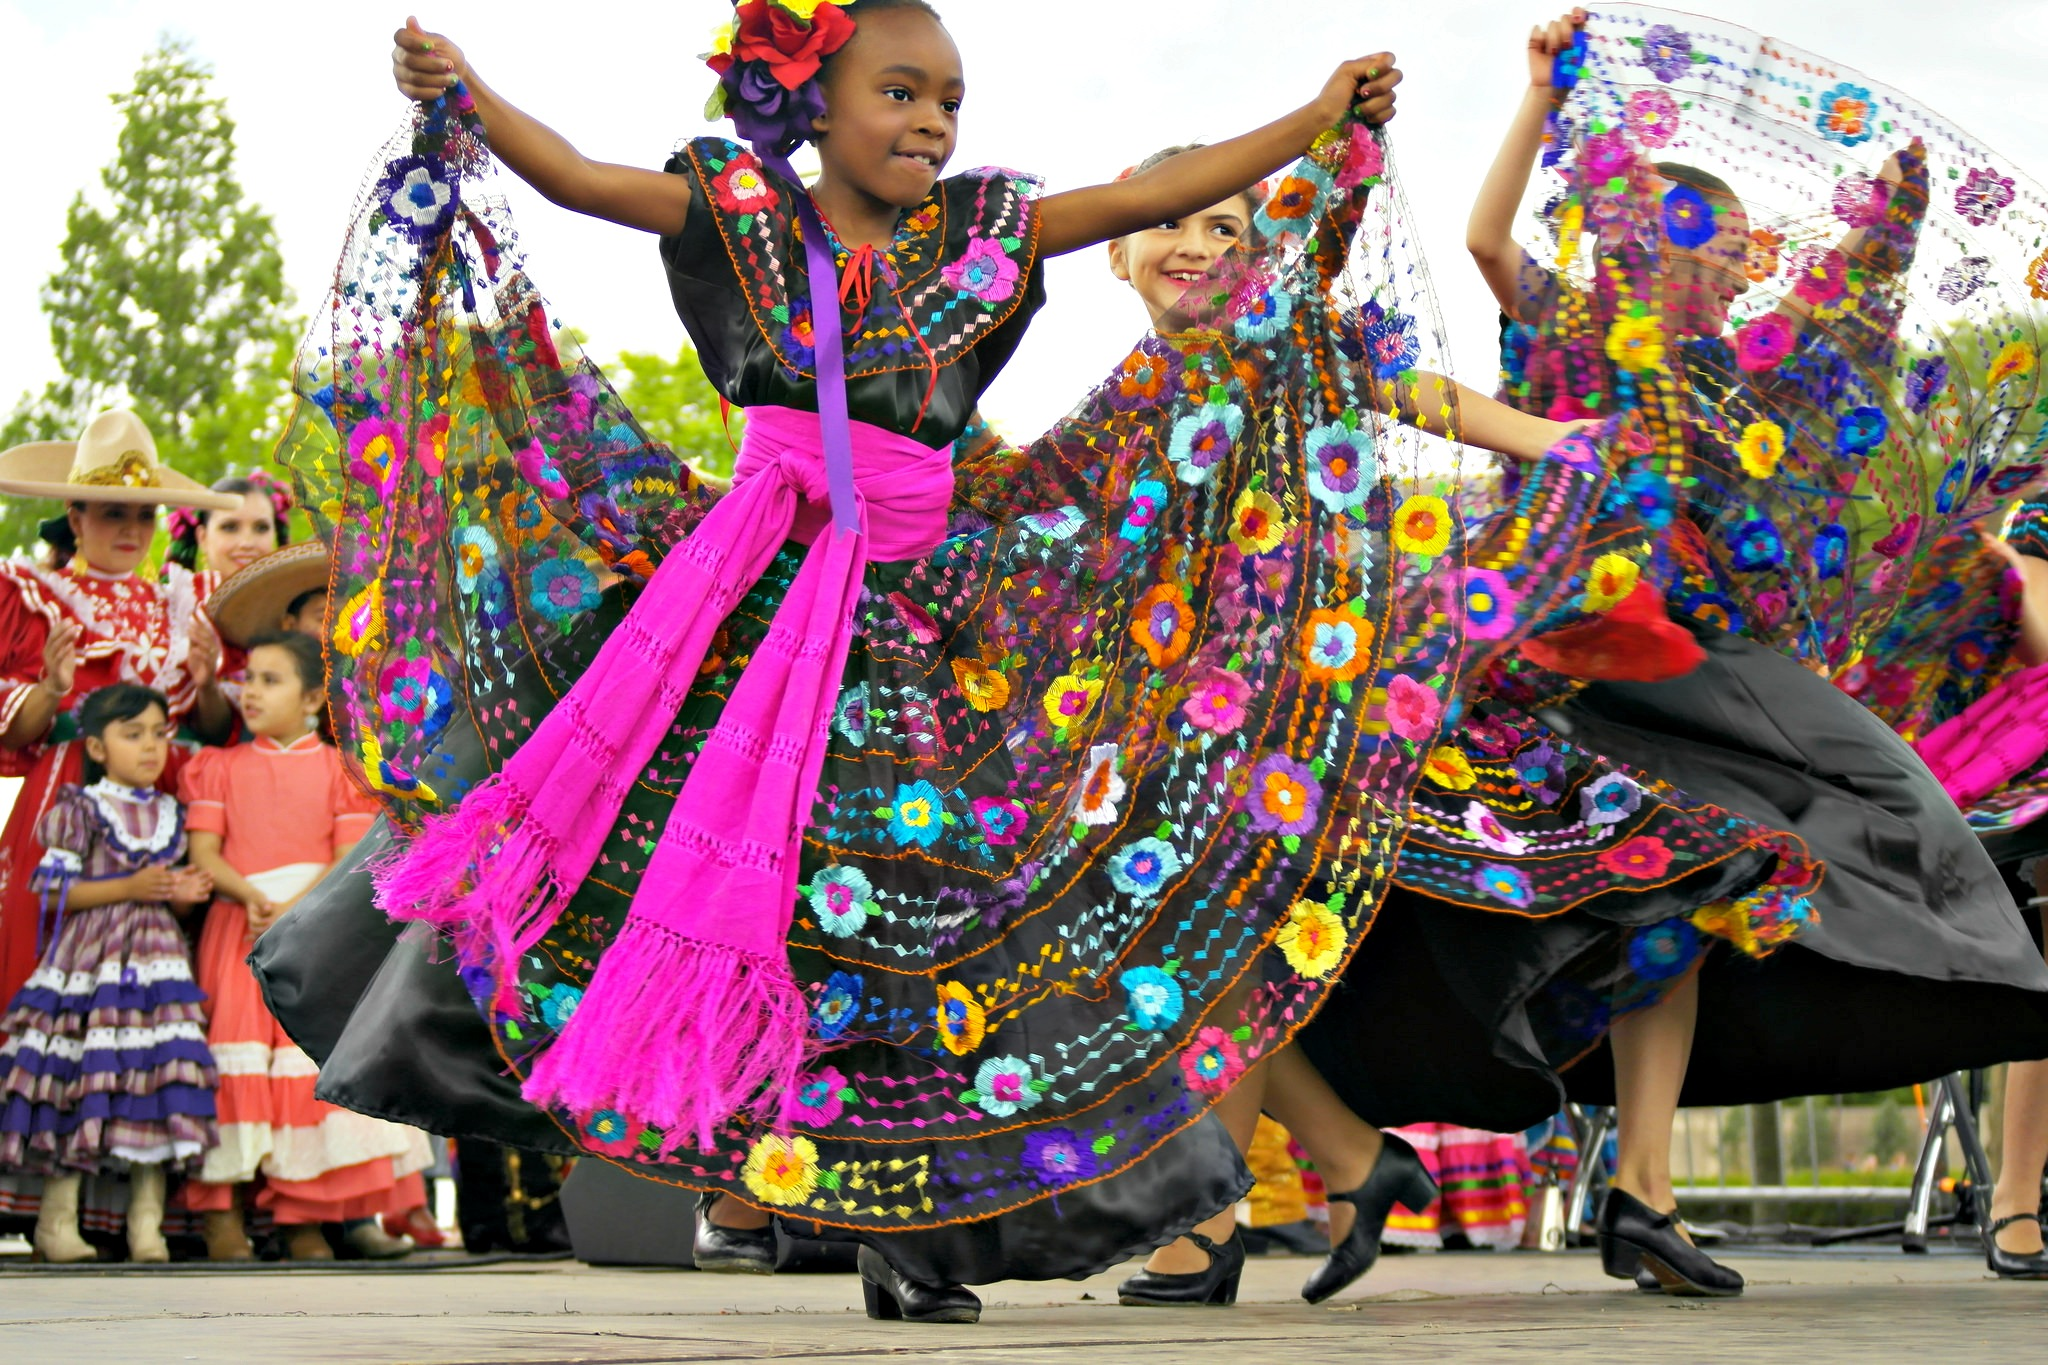 8 Free Cinco de Mayo Celebrations that Are Great for Families | Mommy Poppins - Things To Do in ...